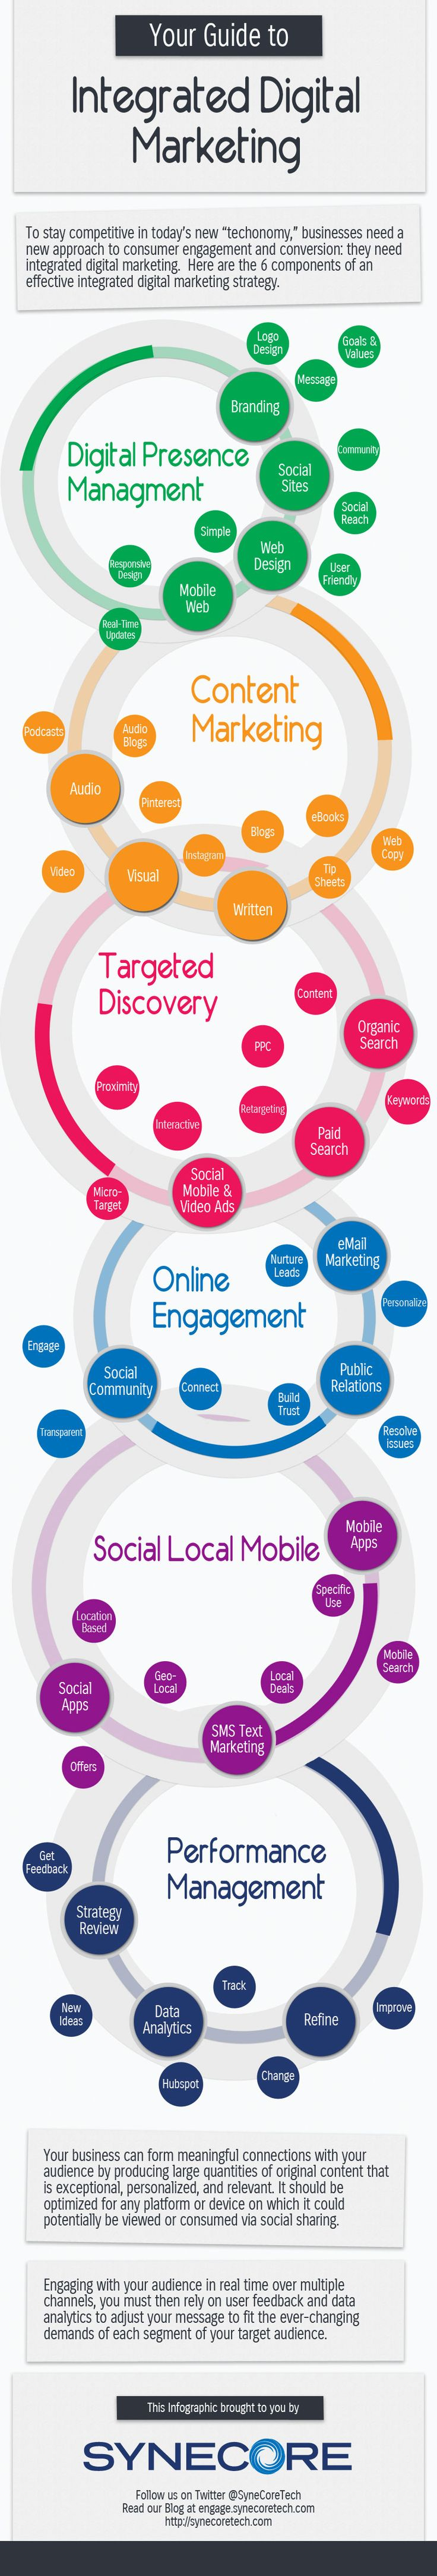 Guide to Integrated Digital Marketing. Infographic.